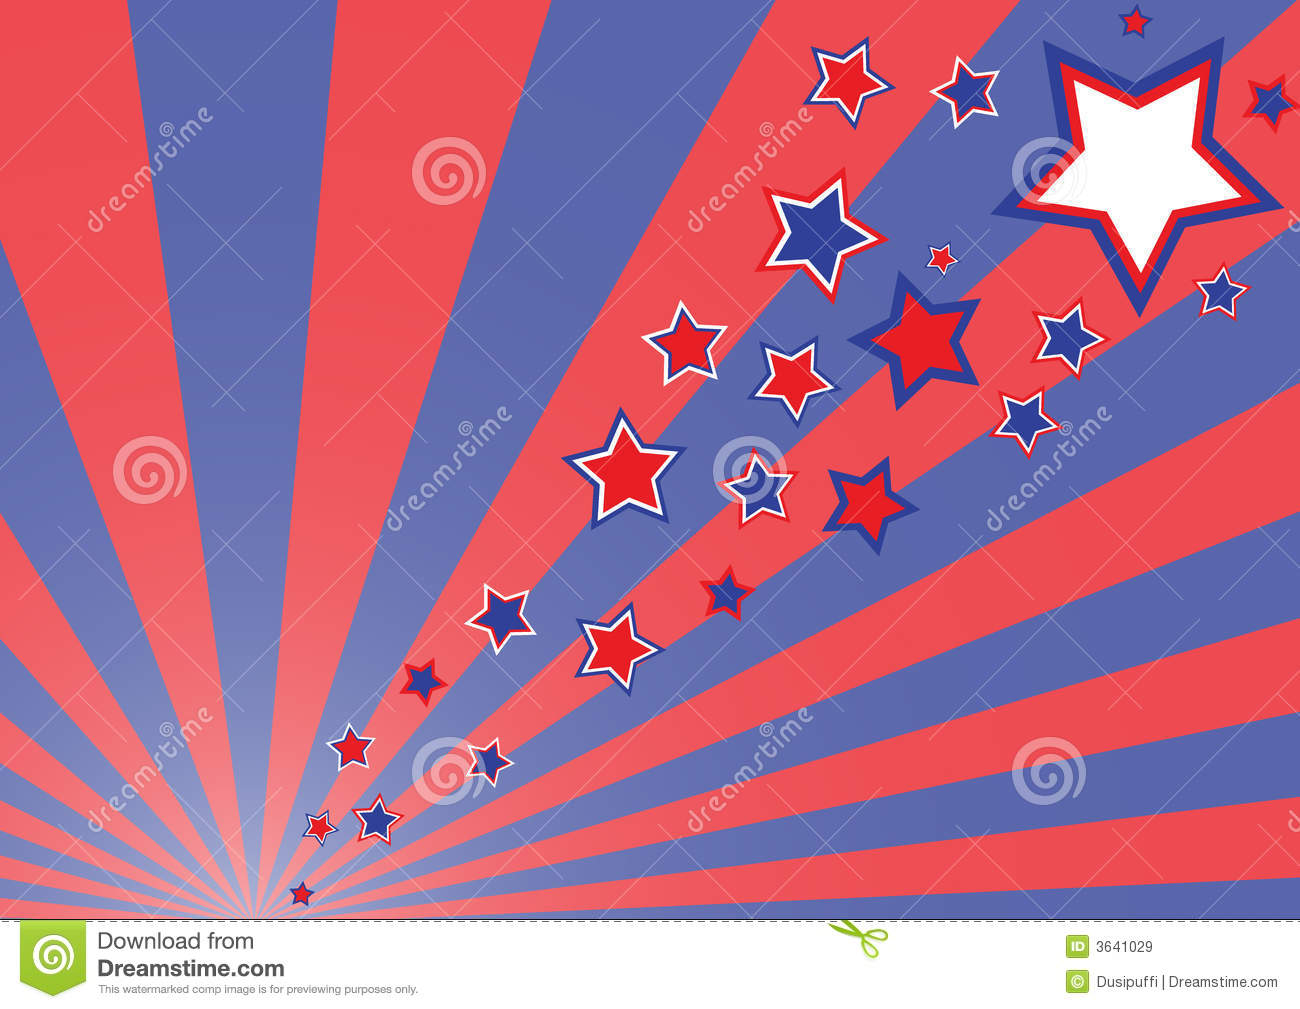 Funky Background Royalty Free Stock Images - Image: 3641029